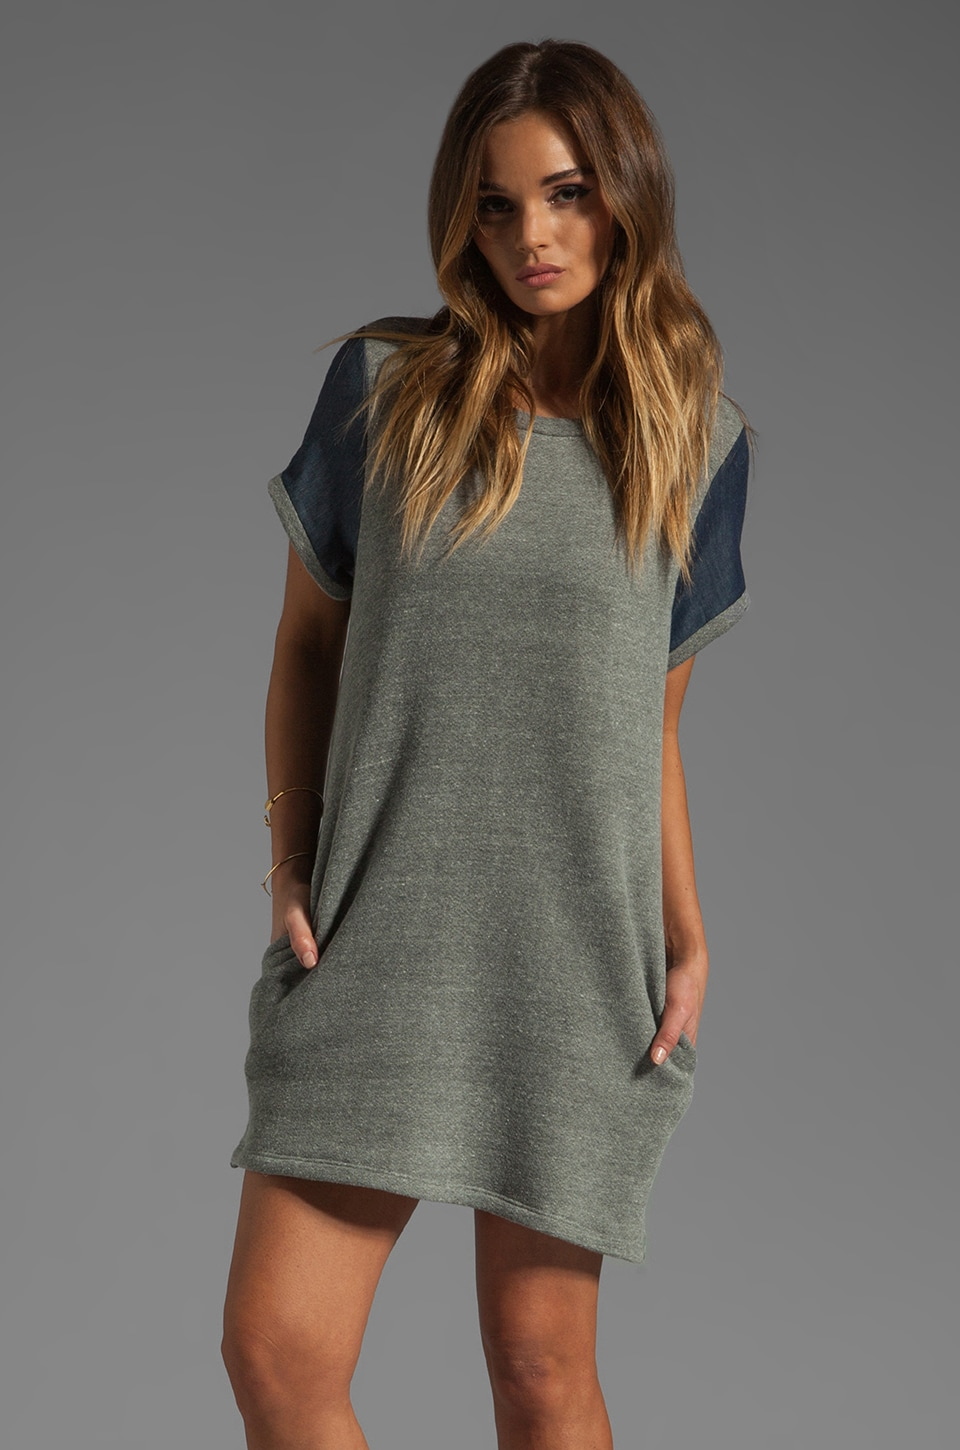 Riller & Fount Roberta Short Sleeve Tunic in Flint/Uptown